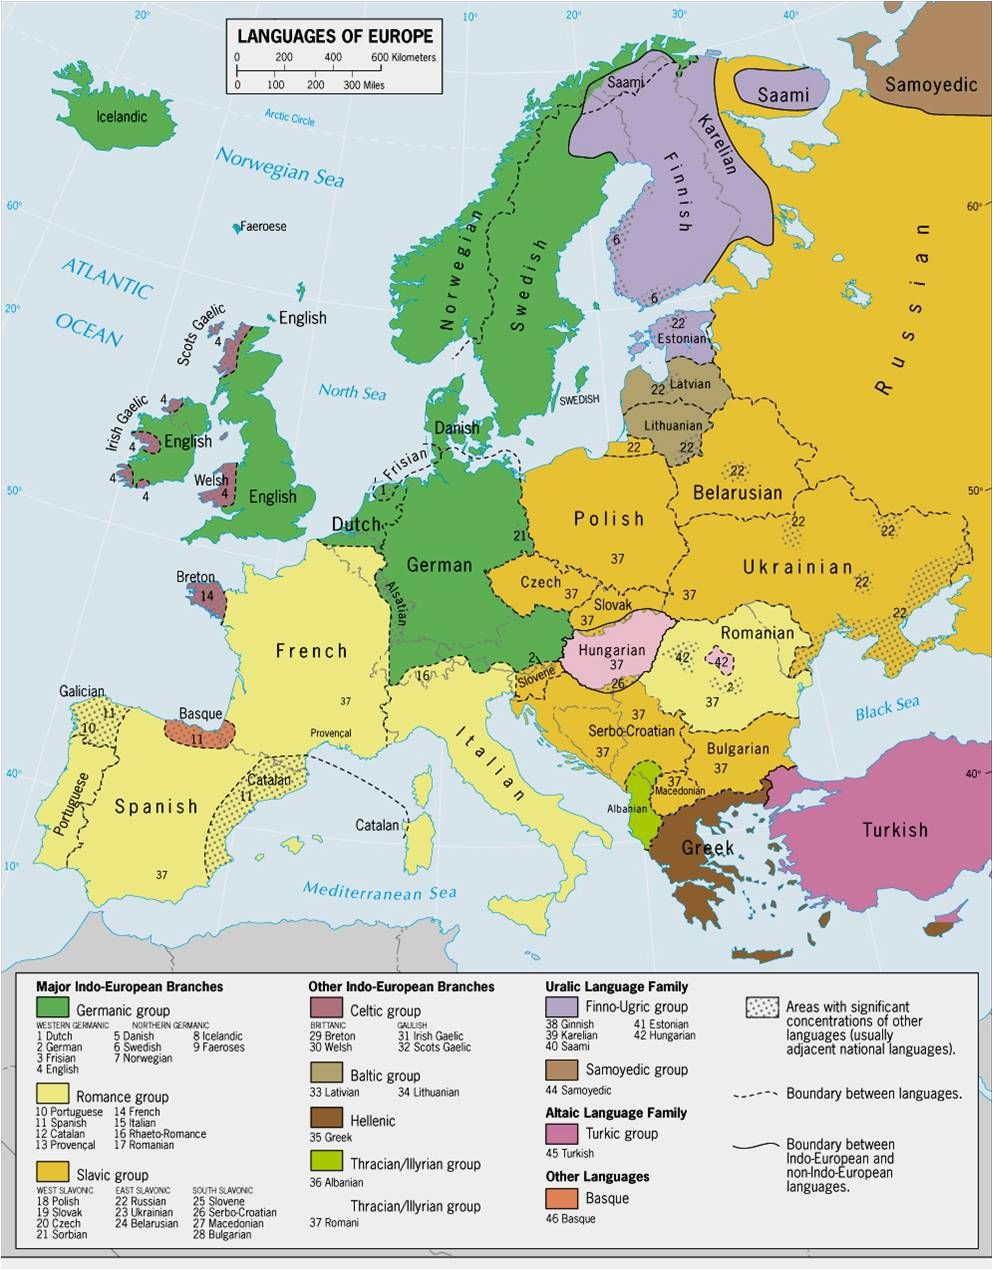 languages of europe classification by linguistic family